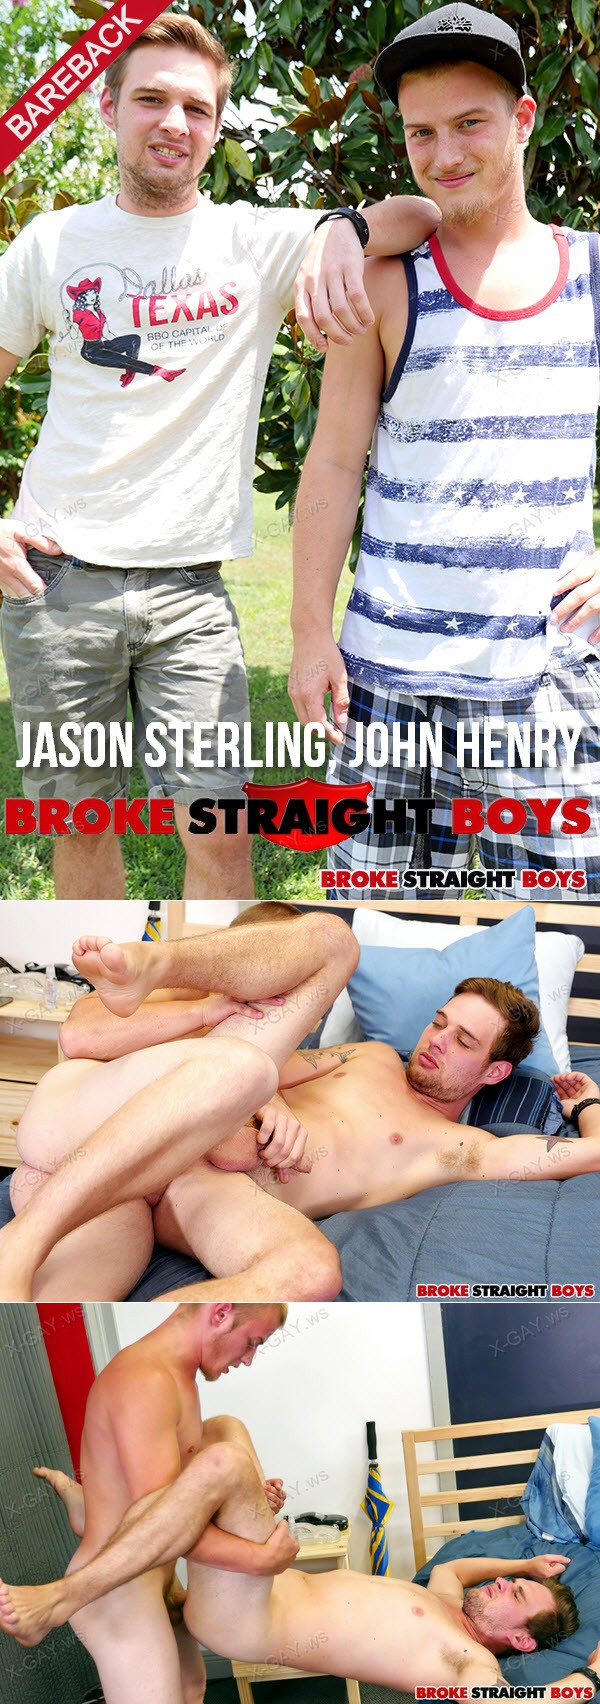 BrokeStraightBoys: Jason Sterling, John Henry (RAW)